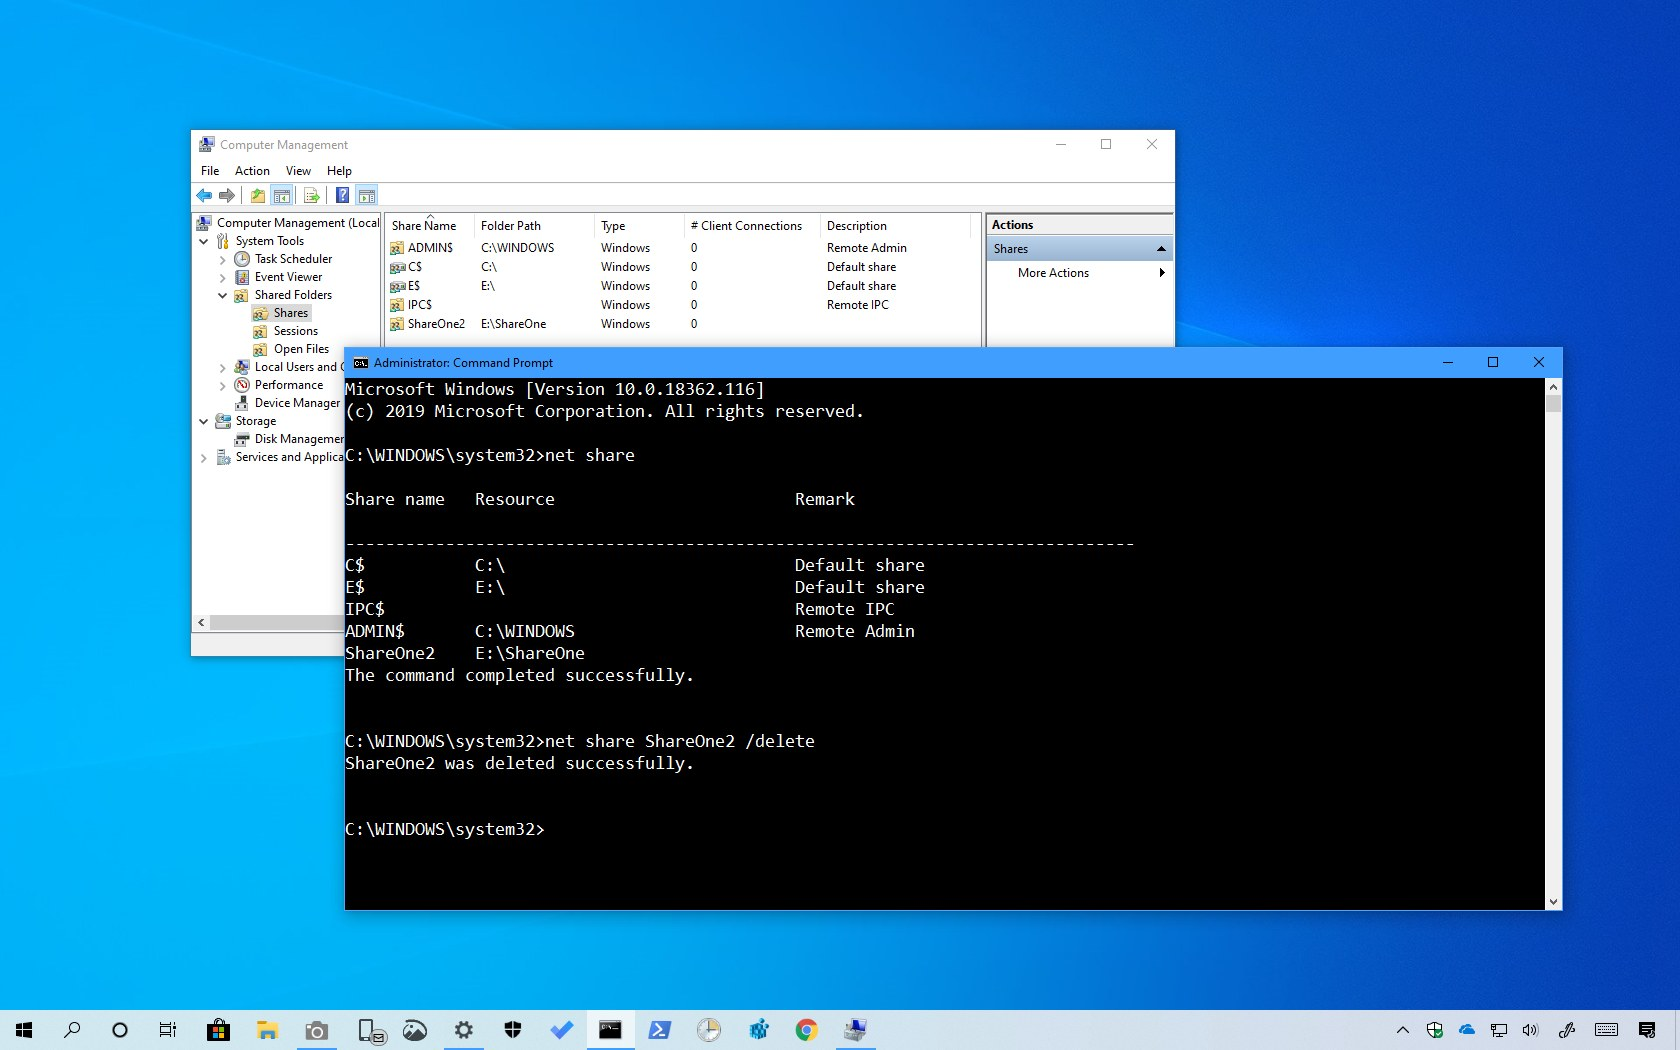 How to stop sharing a network folder on Windows 10